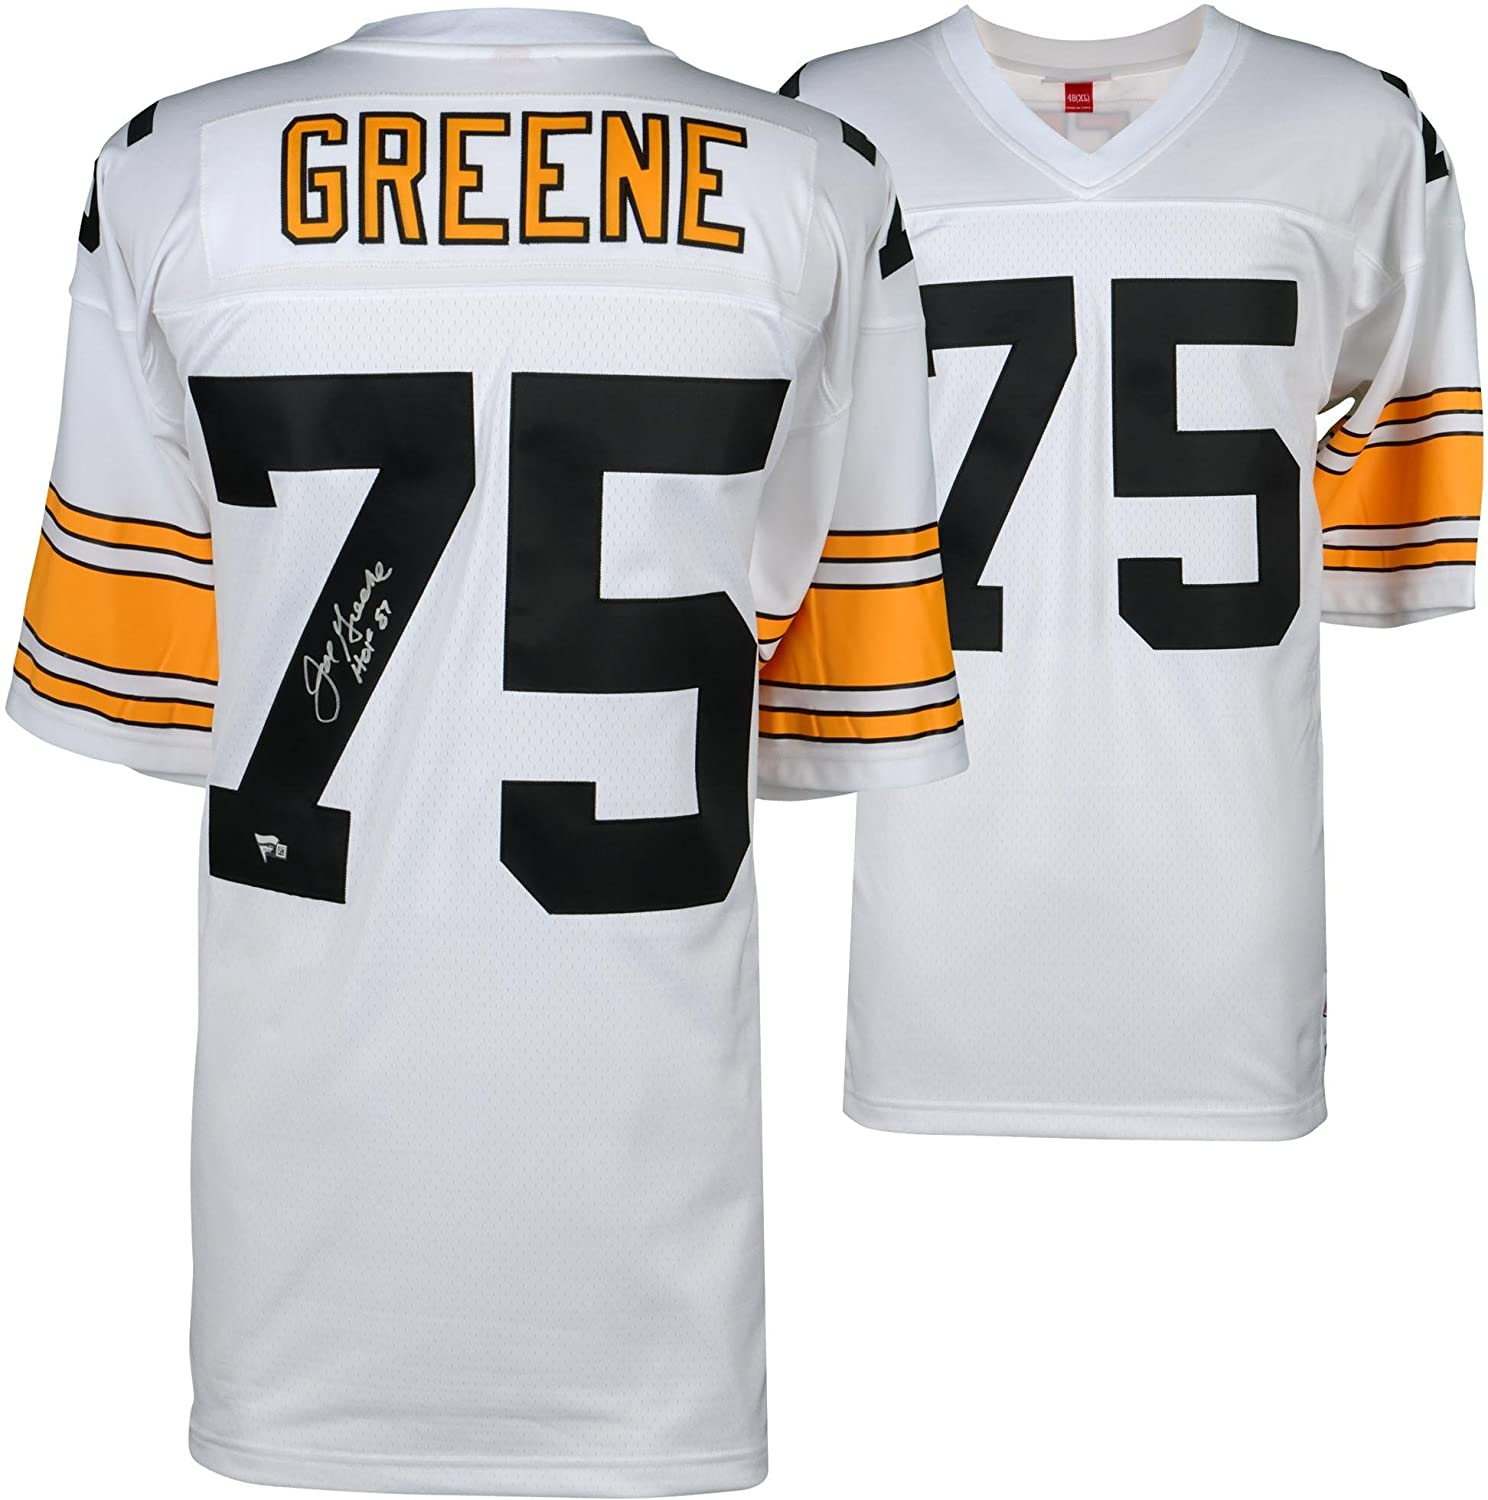 Joe Greene Pittsburgh Steelers Autographed White Mitchell & Ness Replica Throwback Jersey with